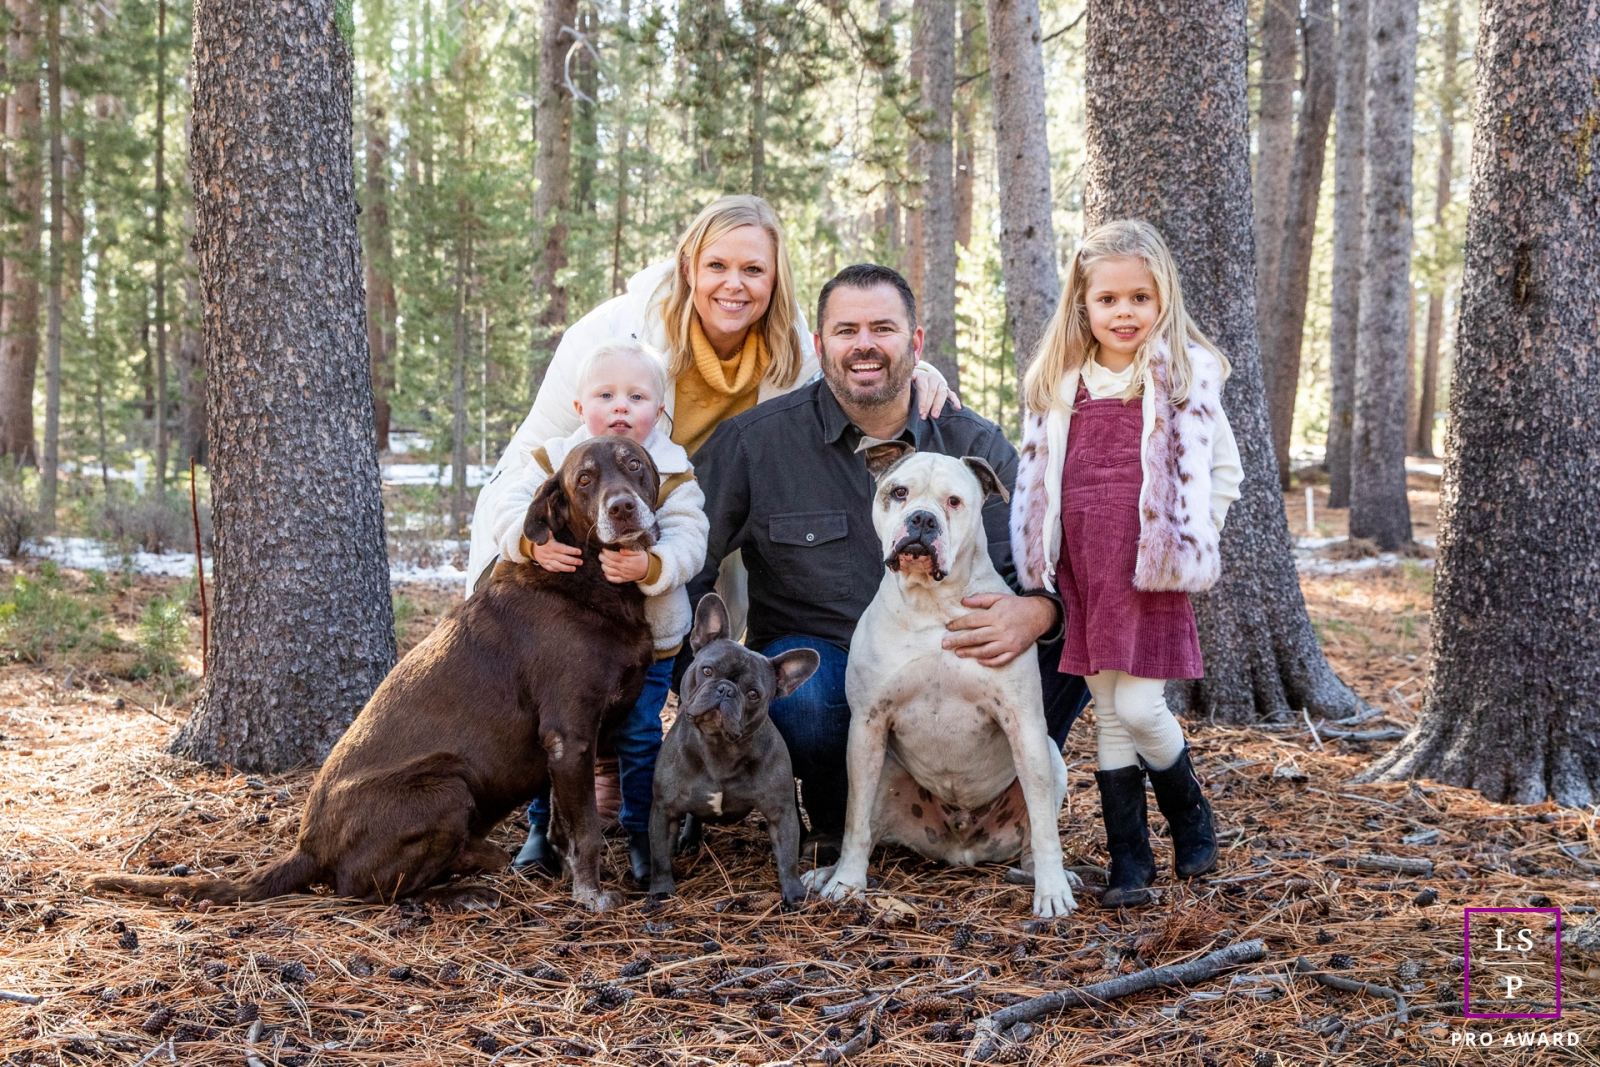 Artistic Lake Tahoe Lifestyle Photography of a Family with their dogs in the woods up at Lake Tahoe